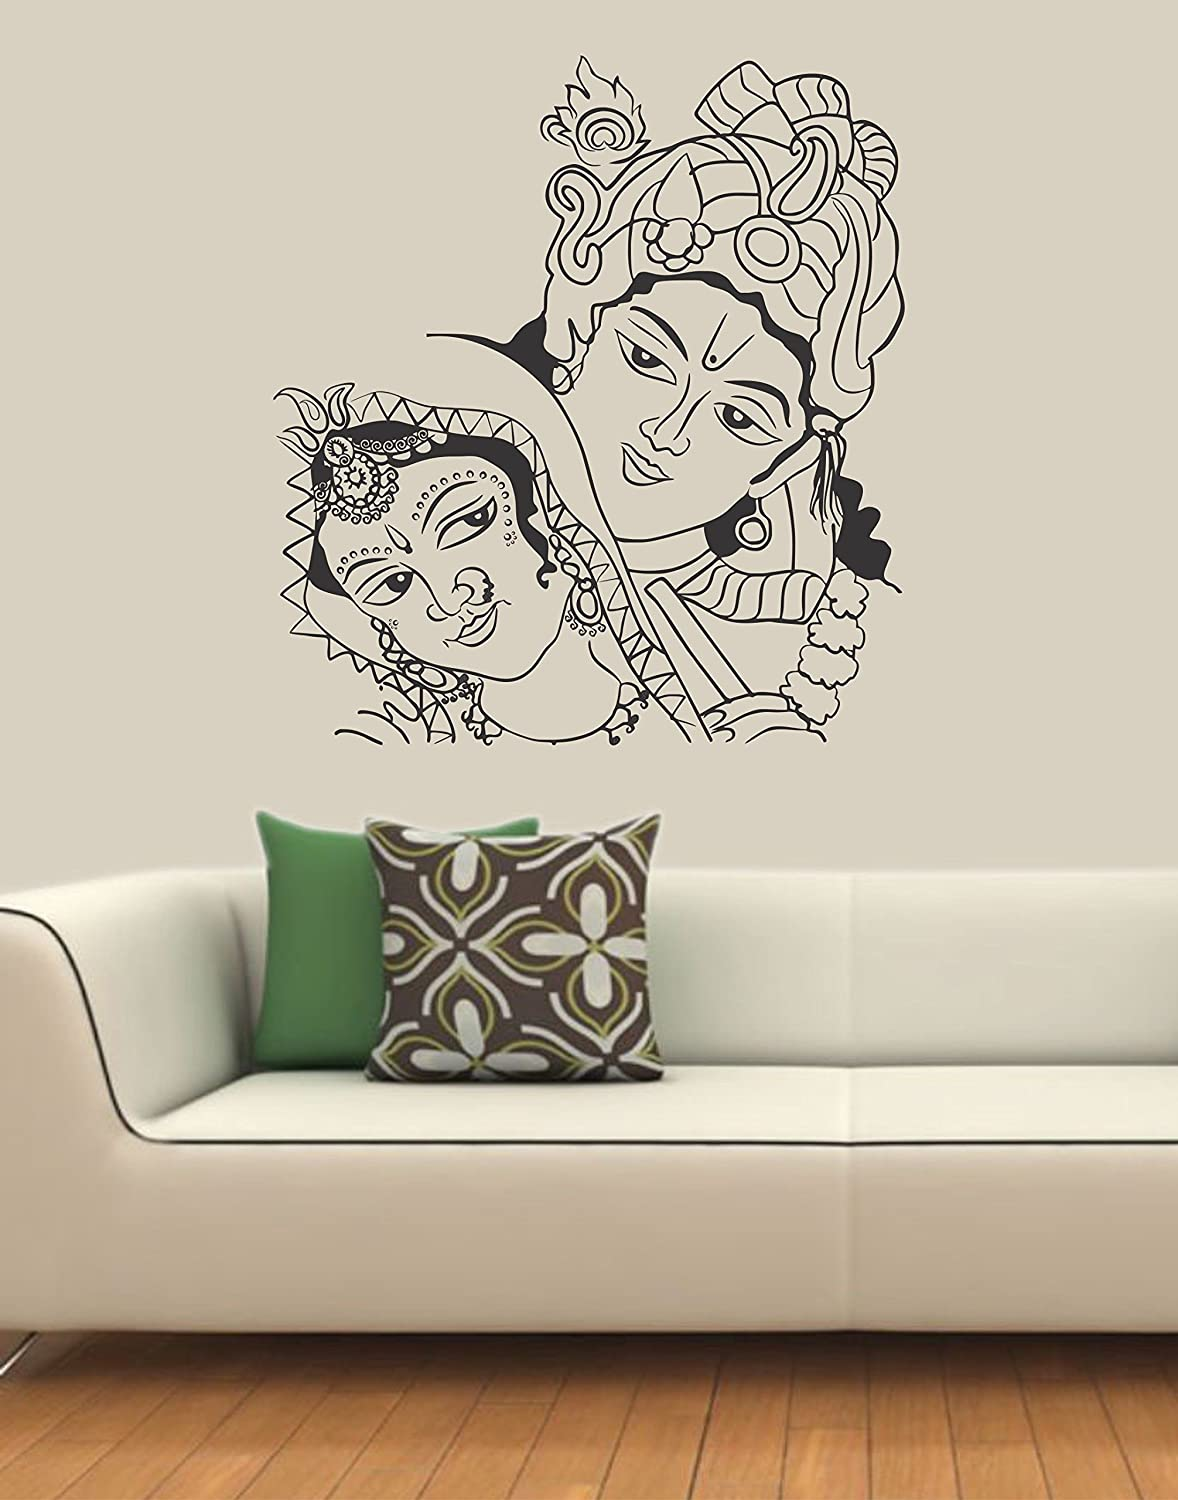 Wall stickers radha krishna - Buy Ddreamz Face Of Radha Krishna Vinyl Wall Sticker Black Online At Low Prices In India Amazon In